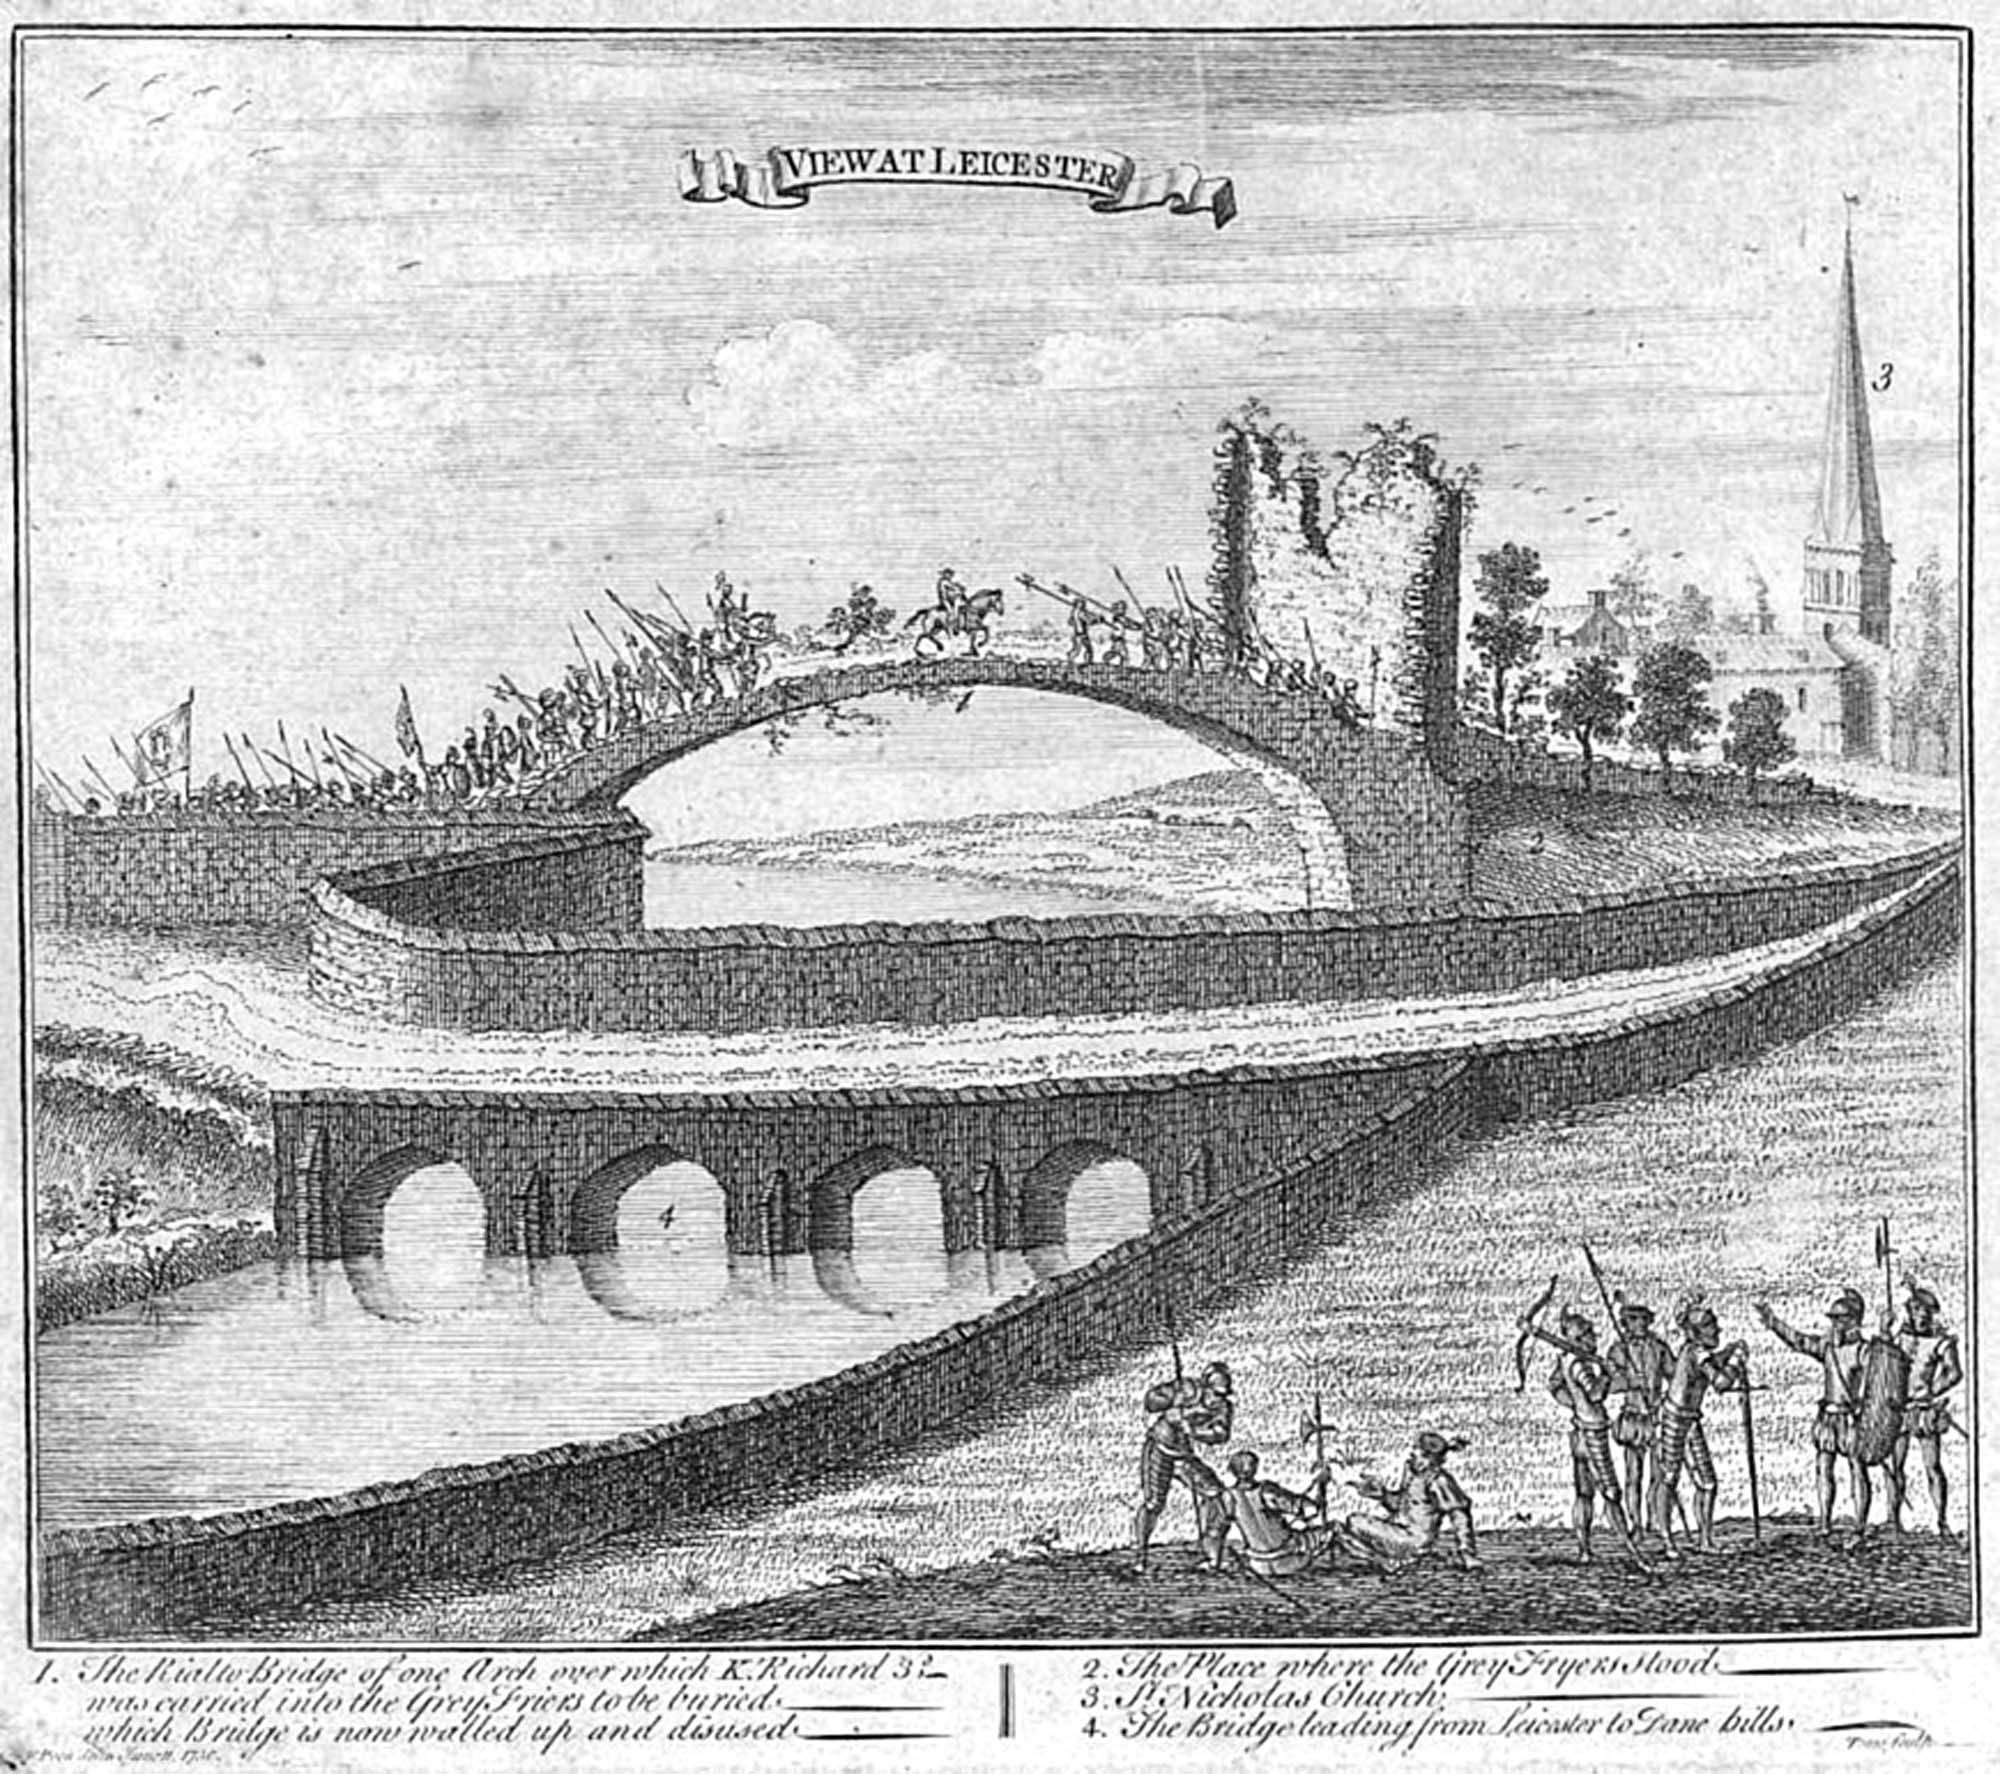 An engraving of Richard III's body returning to Leicester over the Little Bow Bridge by Francis Peck, 1730. In reality the king's body would have been brought back over the larger road bridge in the foreground - University of Leicester Library Special Collections